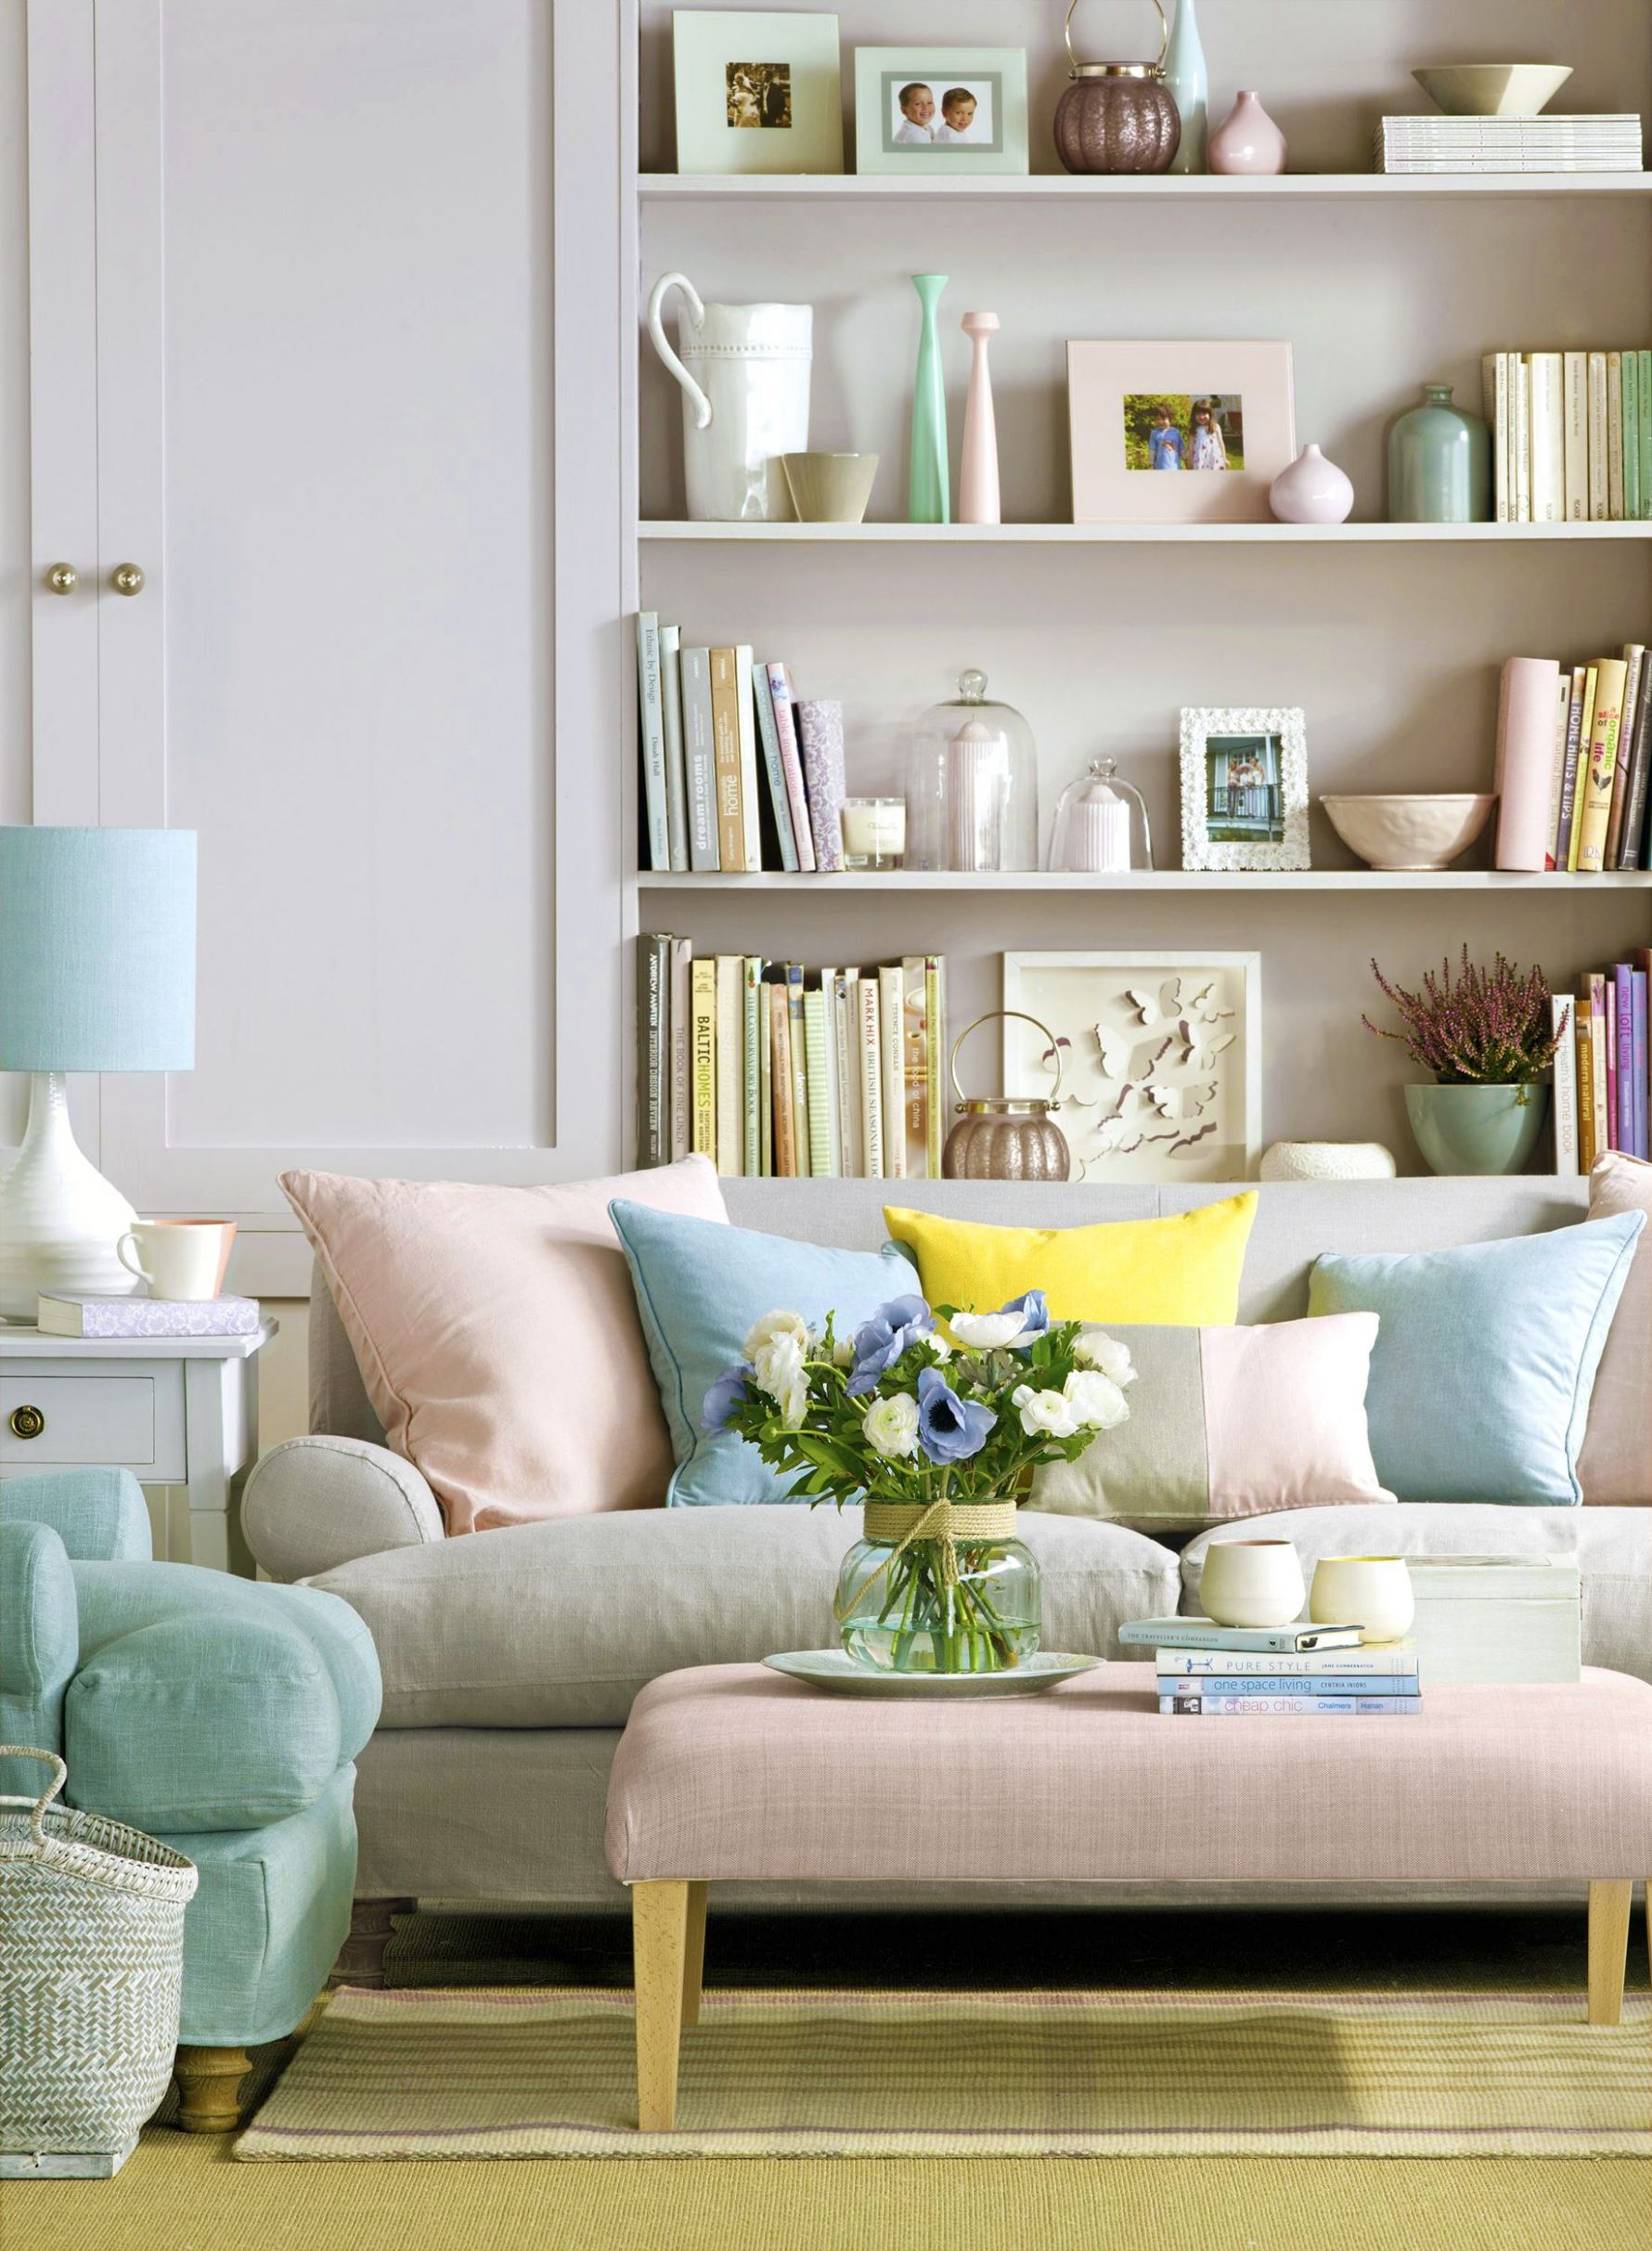 11 Spring Decor Ideas to Freshen Up Your Home - Best Spring ..